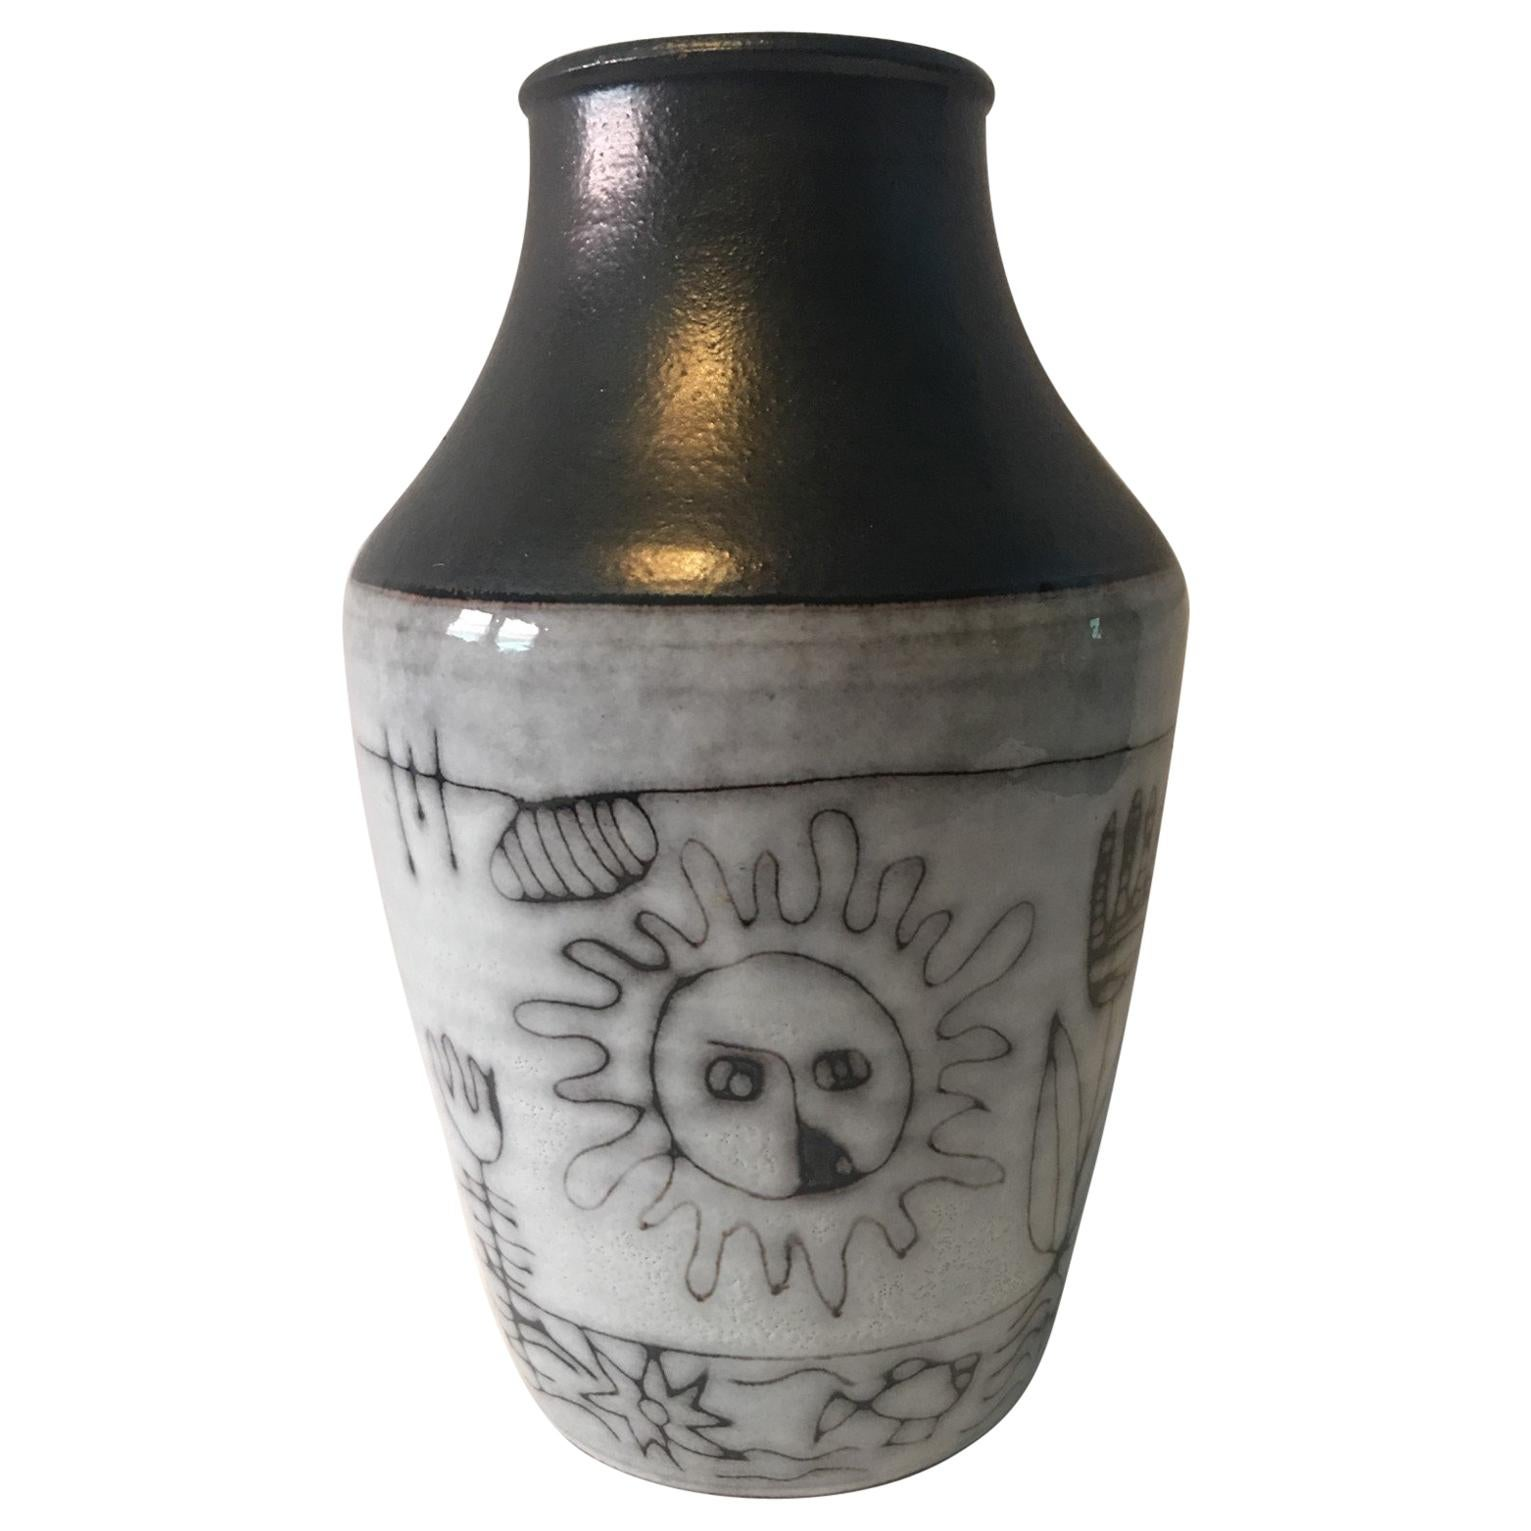 A beautiful Ceramic vase by Wilhelm and Elly Kuch